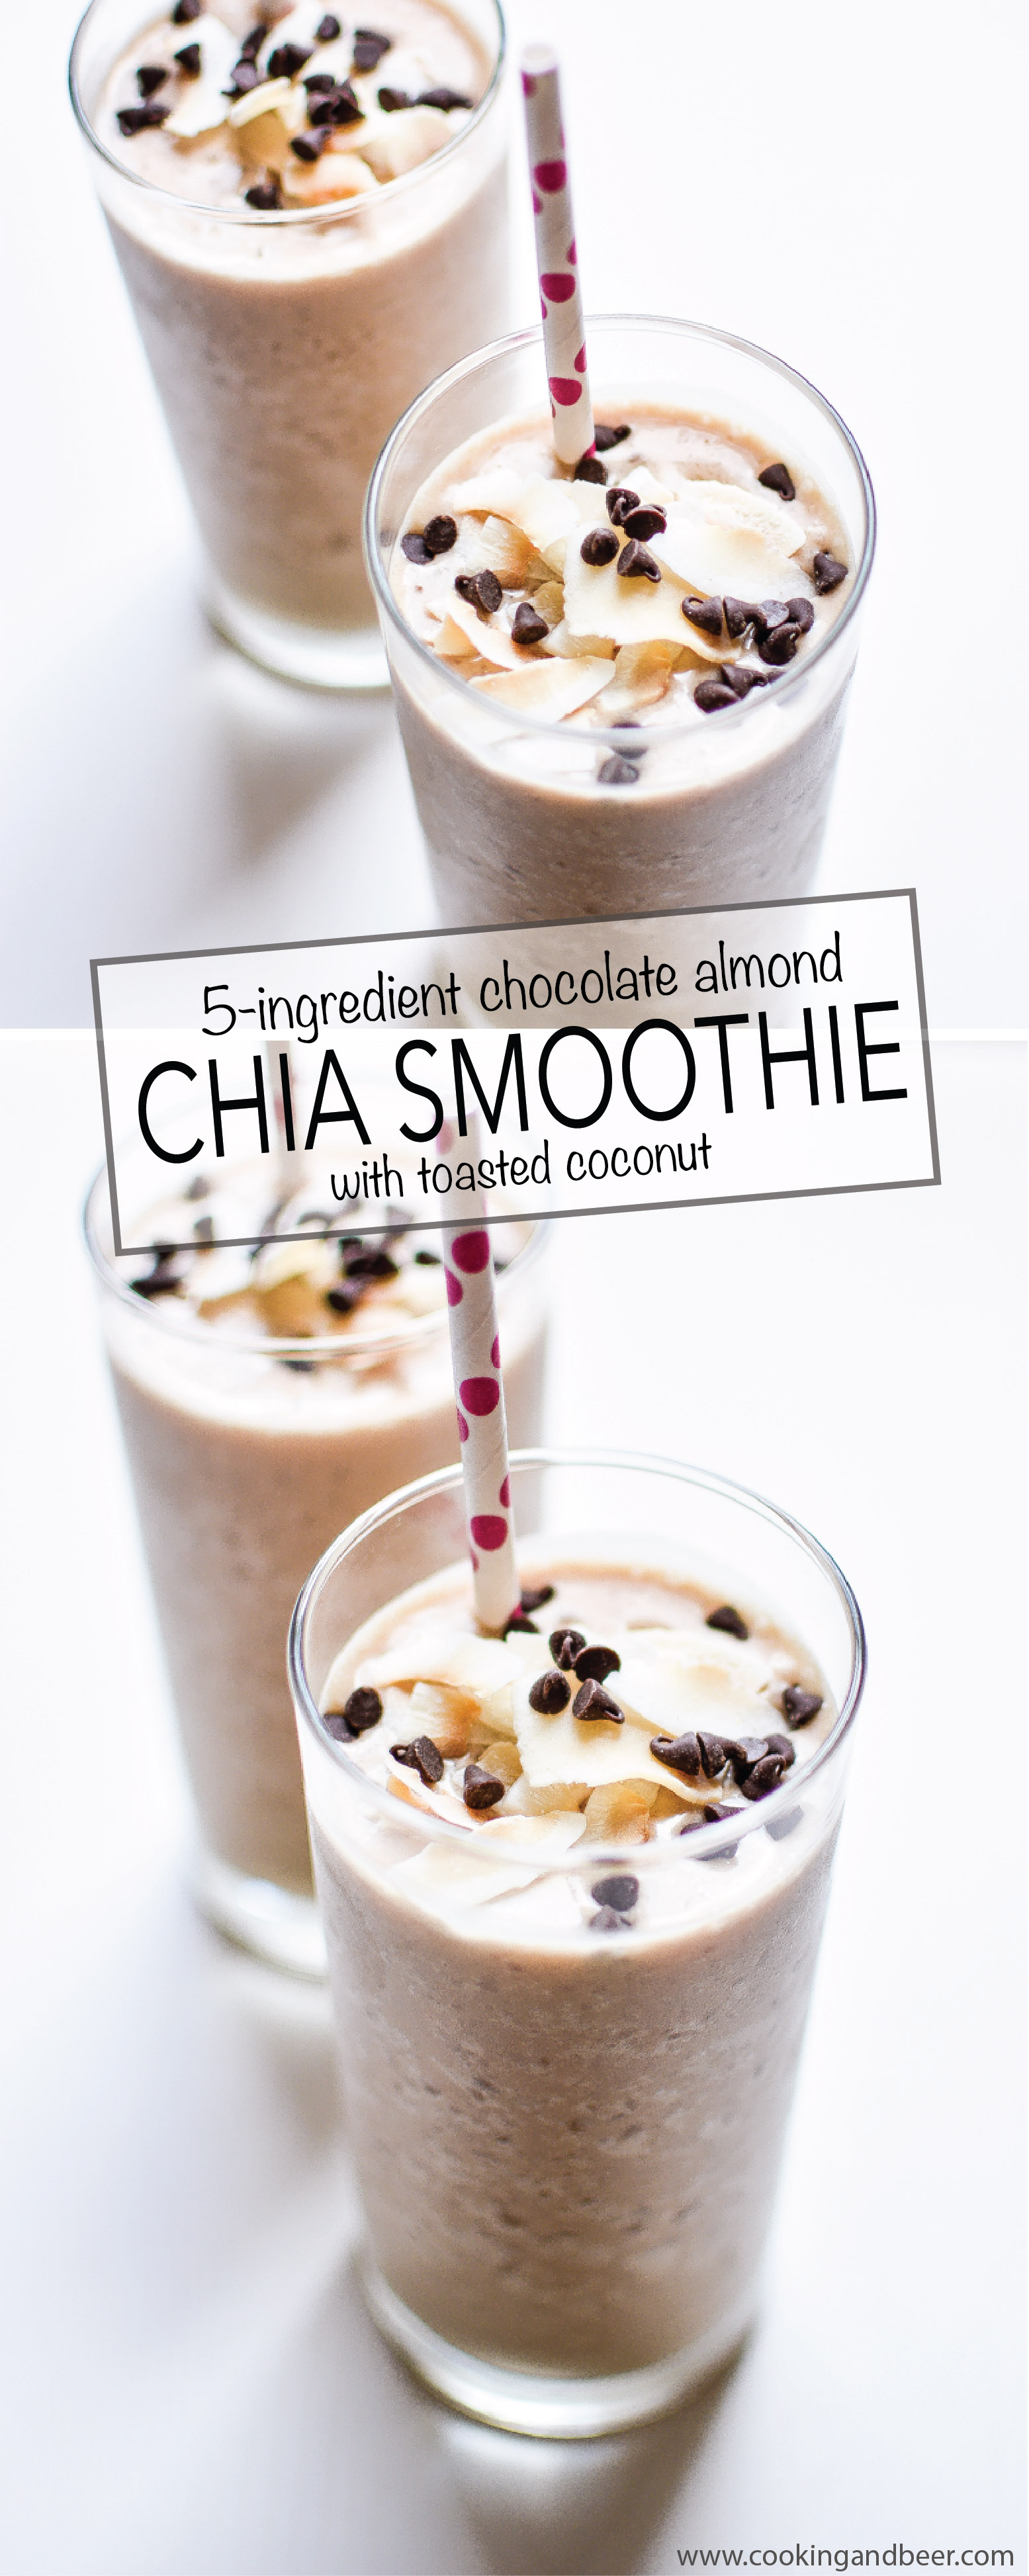 5-Ingredient Chocolate Almond Chia Smoothie with Toasted Coconut